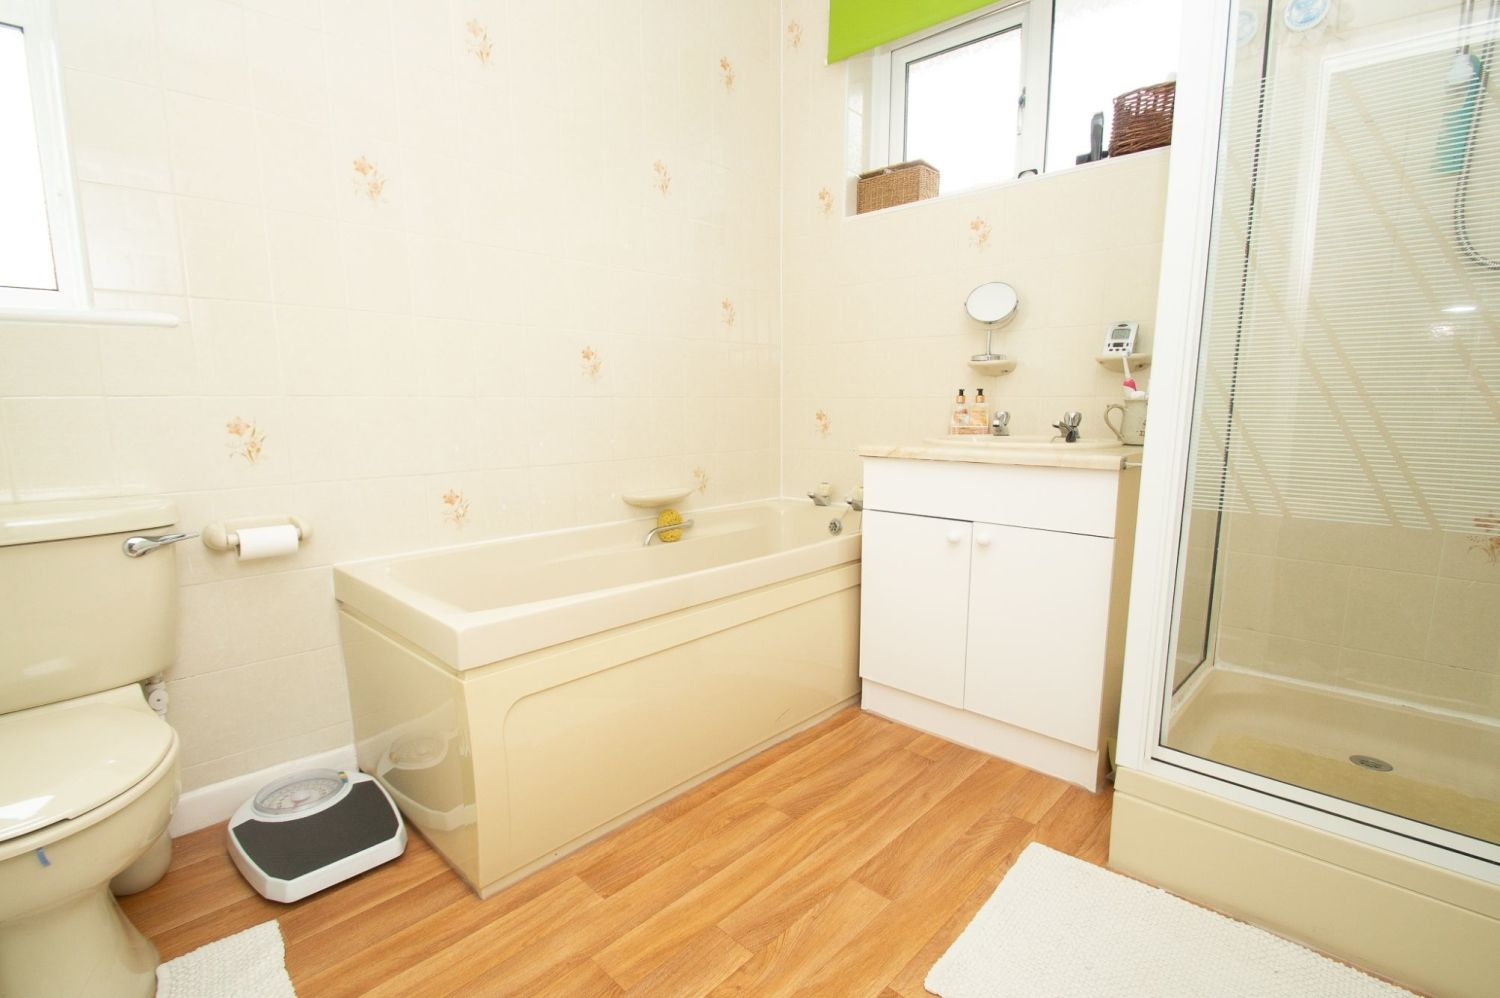 3 bed semi-detached for sale in Vicarage Crescent, Redditch  - Property Image 11